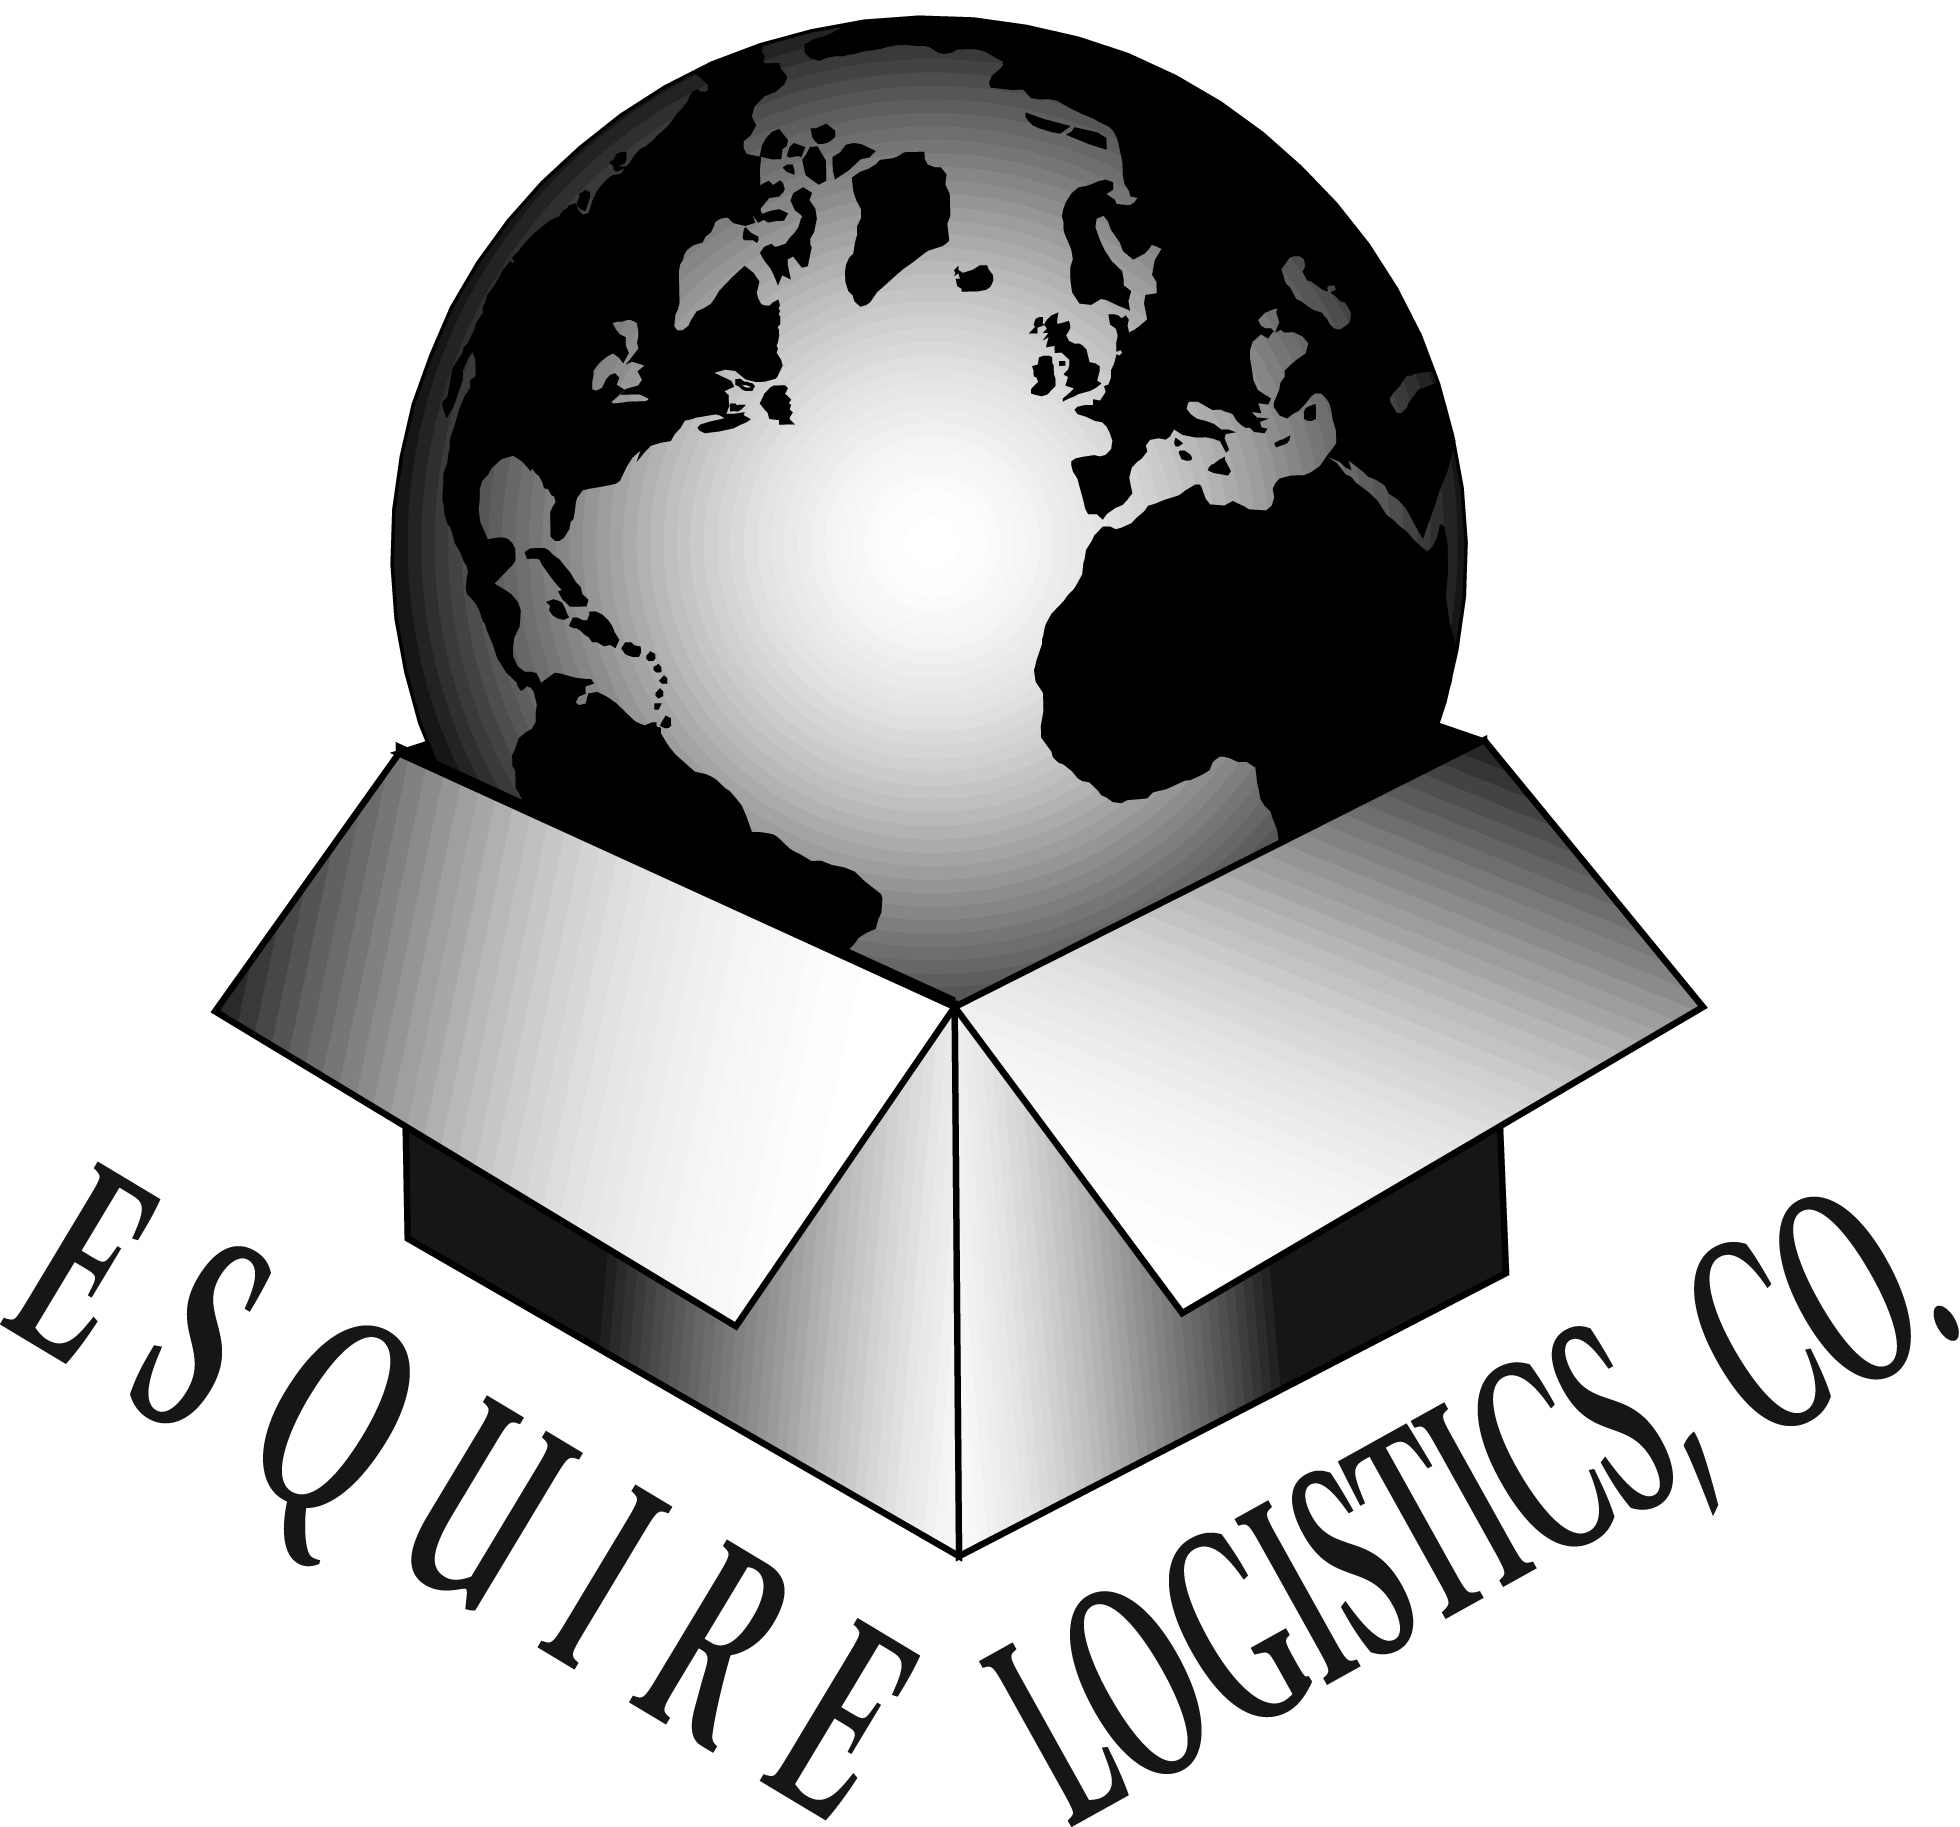 Esquire Logistics Co